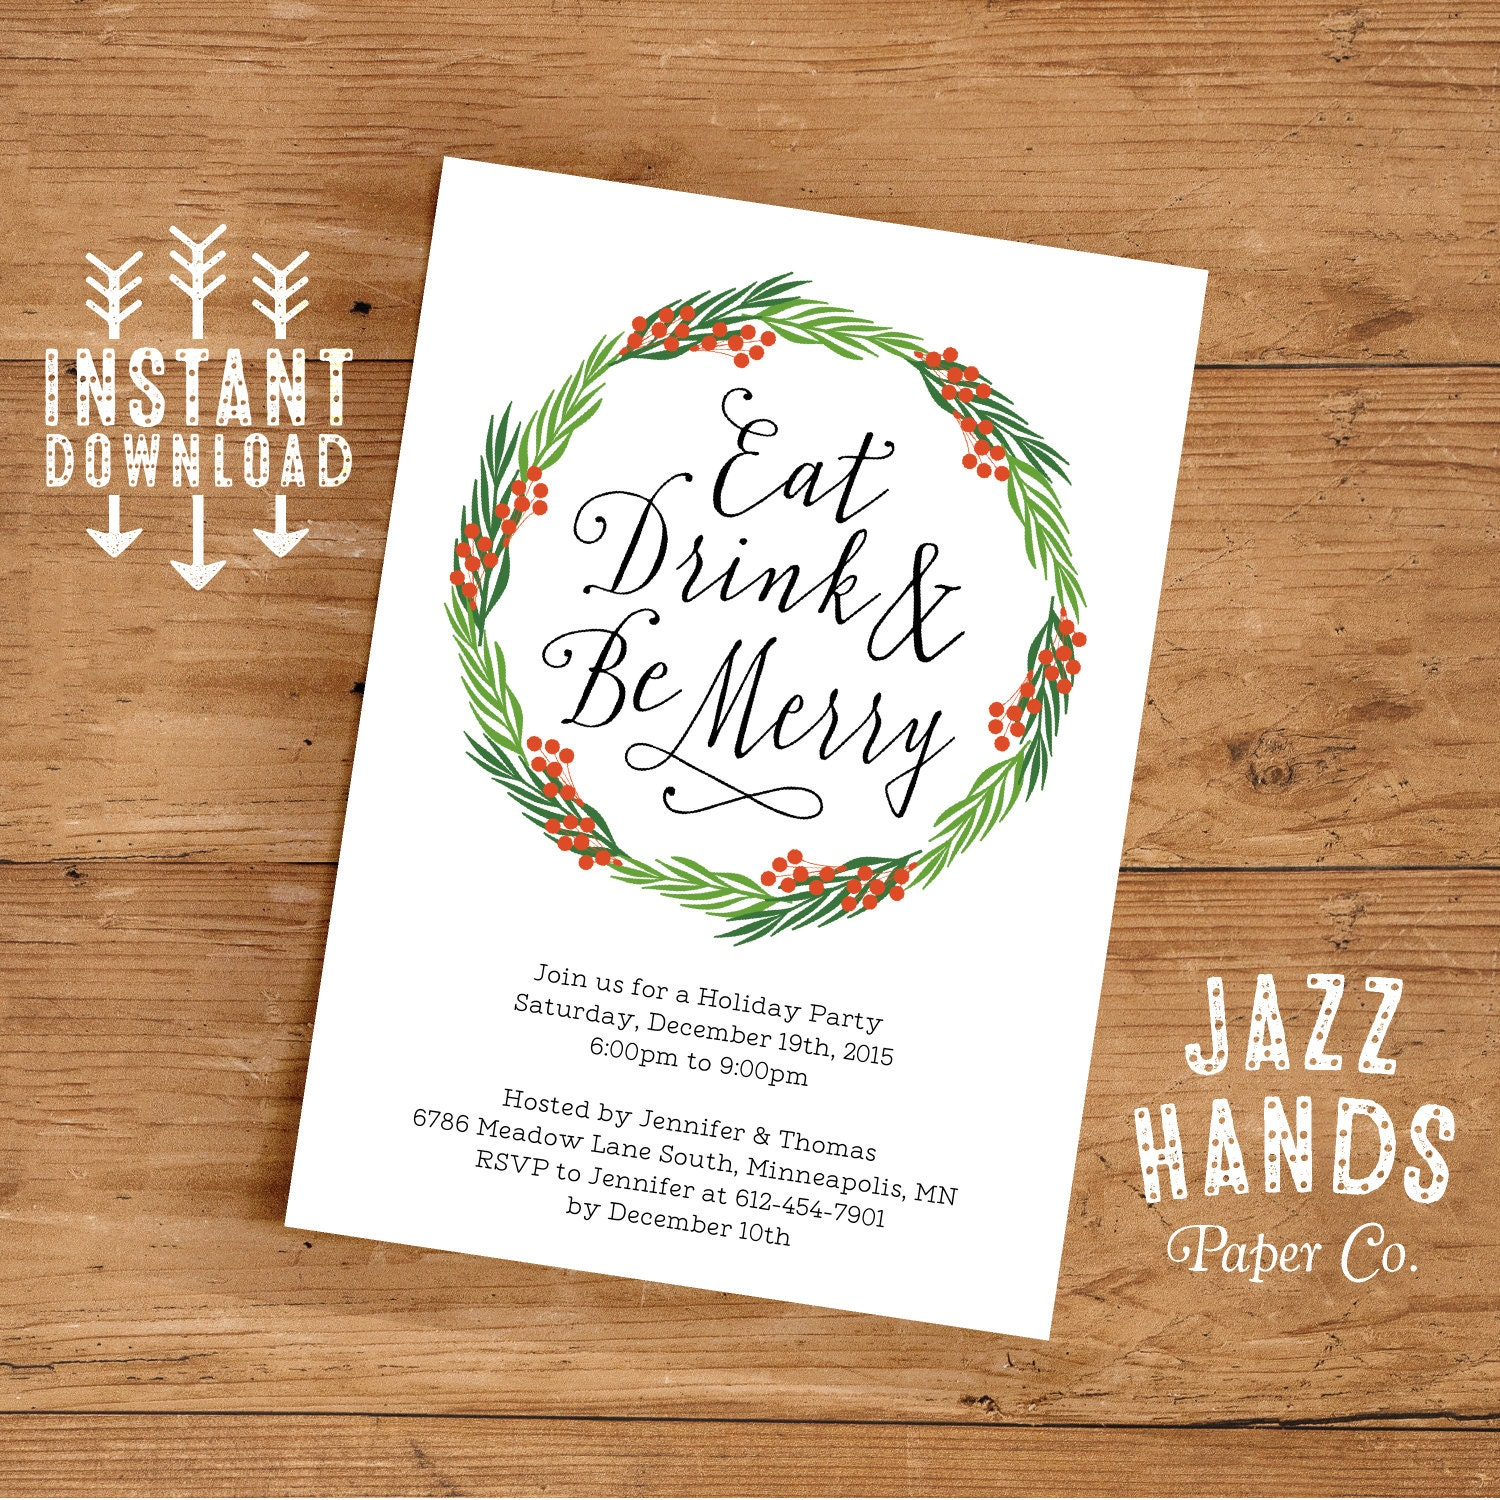 White elephant invitation template diy printable white eat drink and be merry invitation template diy printable holiday invitation wreath solutioingenieria Images